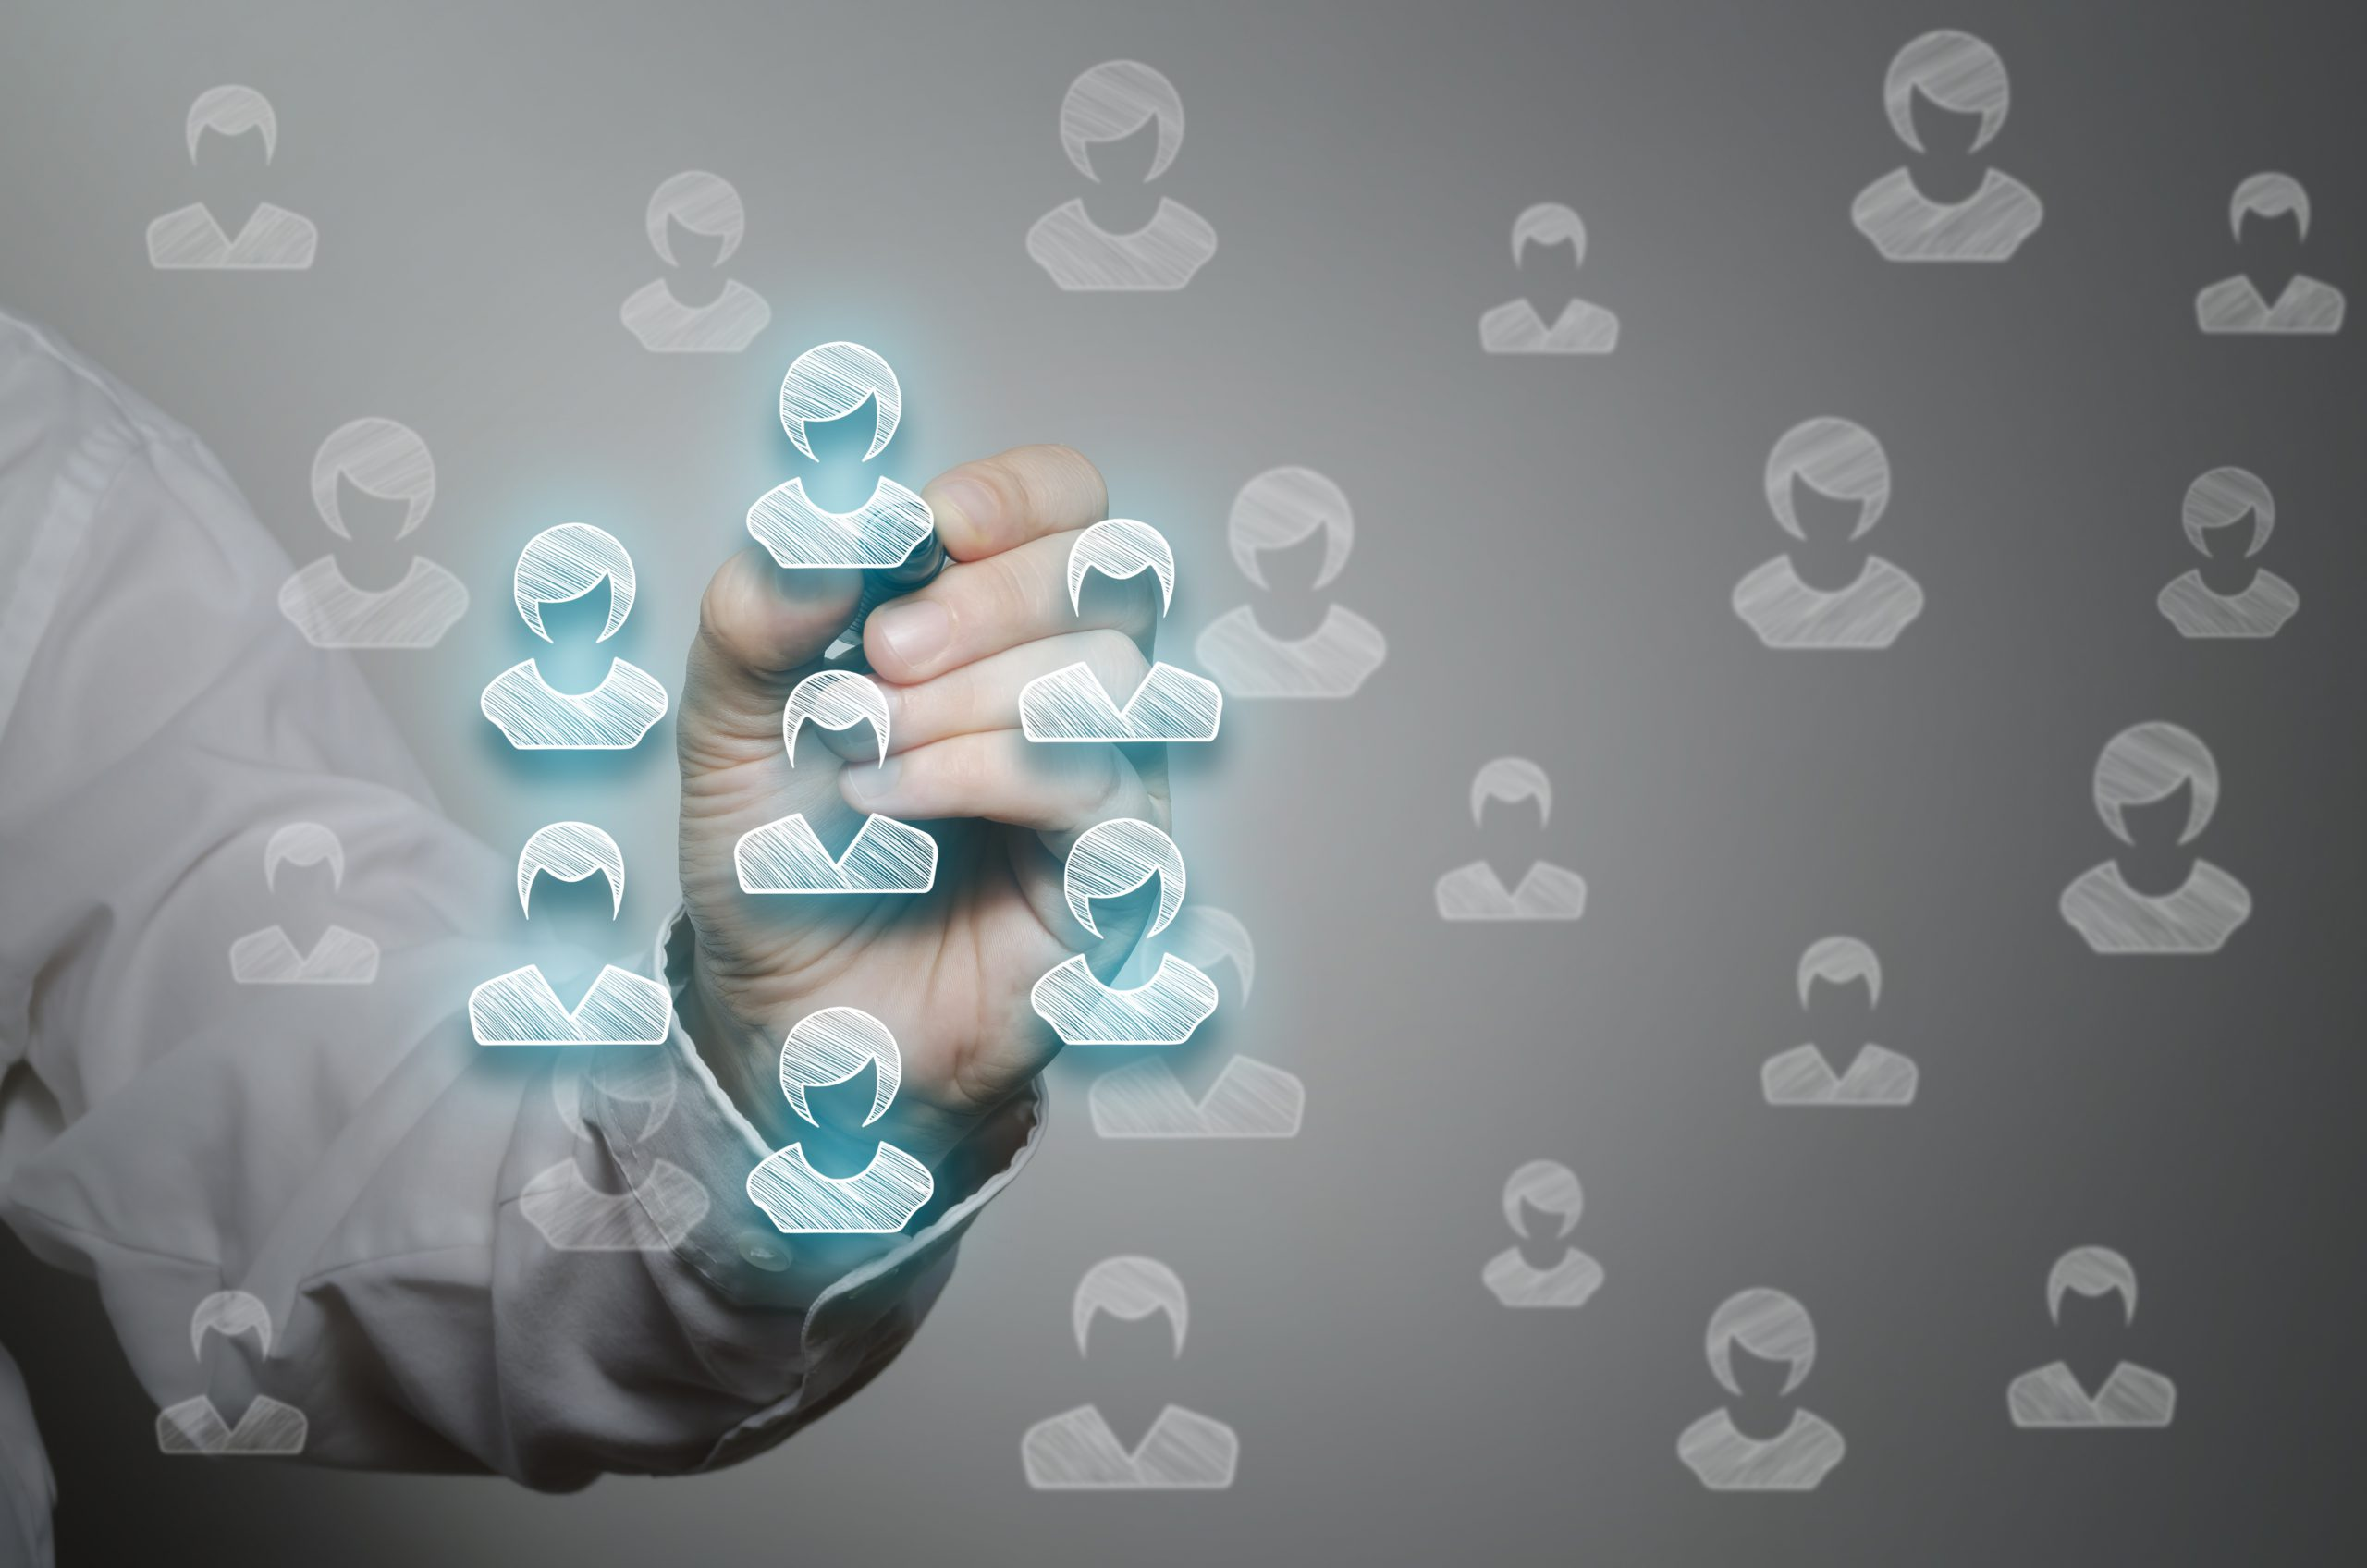 Customers care, customer relationship management (CRM) and team building concepts. Marketing segmentation concept.